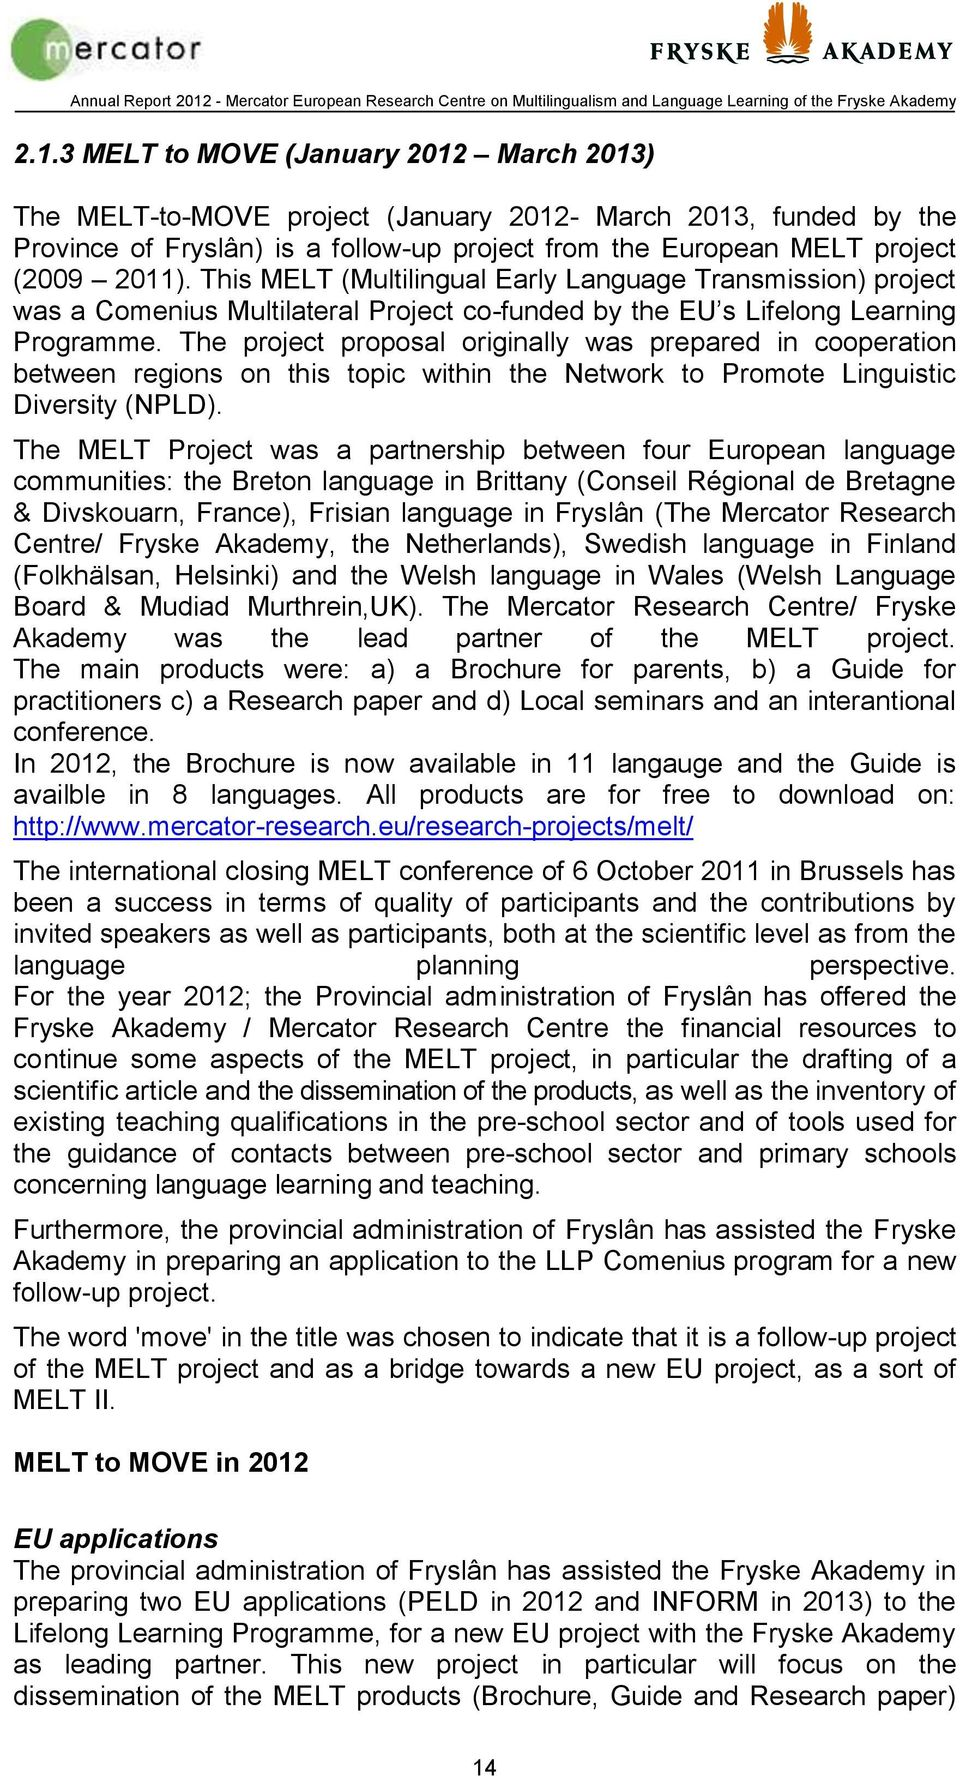 The project proposal originally was prepared in cooperation between regions on this topic within the Network to Promote Linguistic Diversity (NPLD).